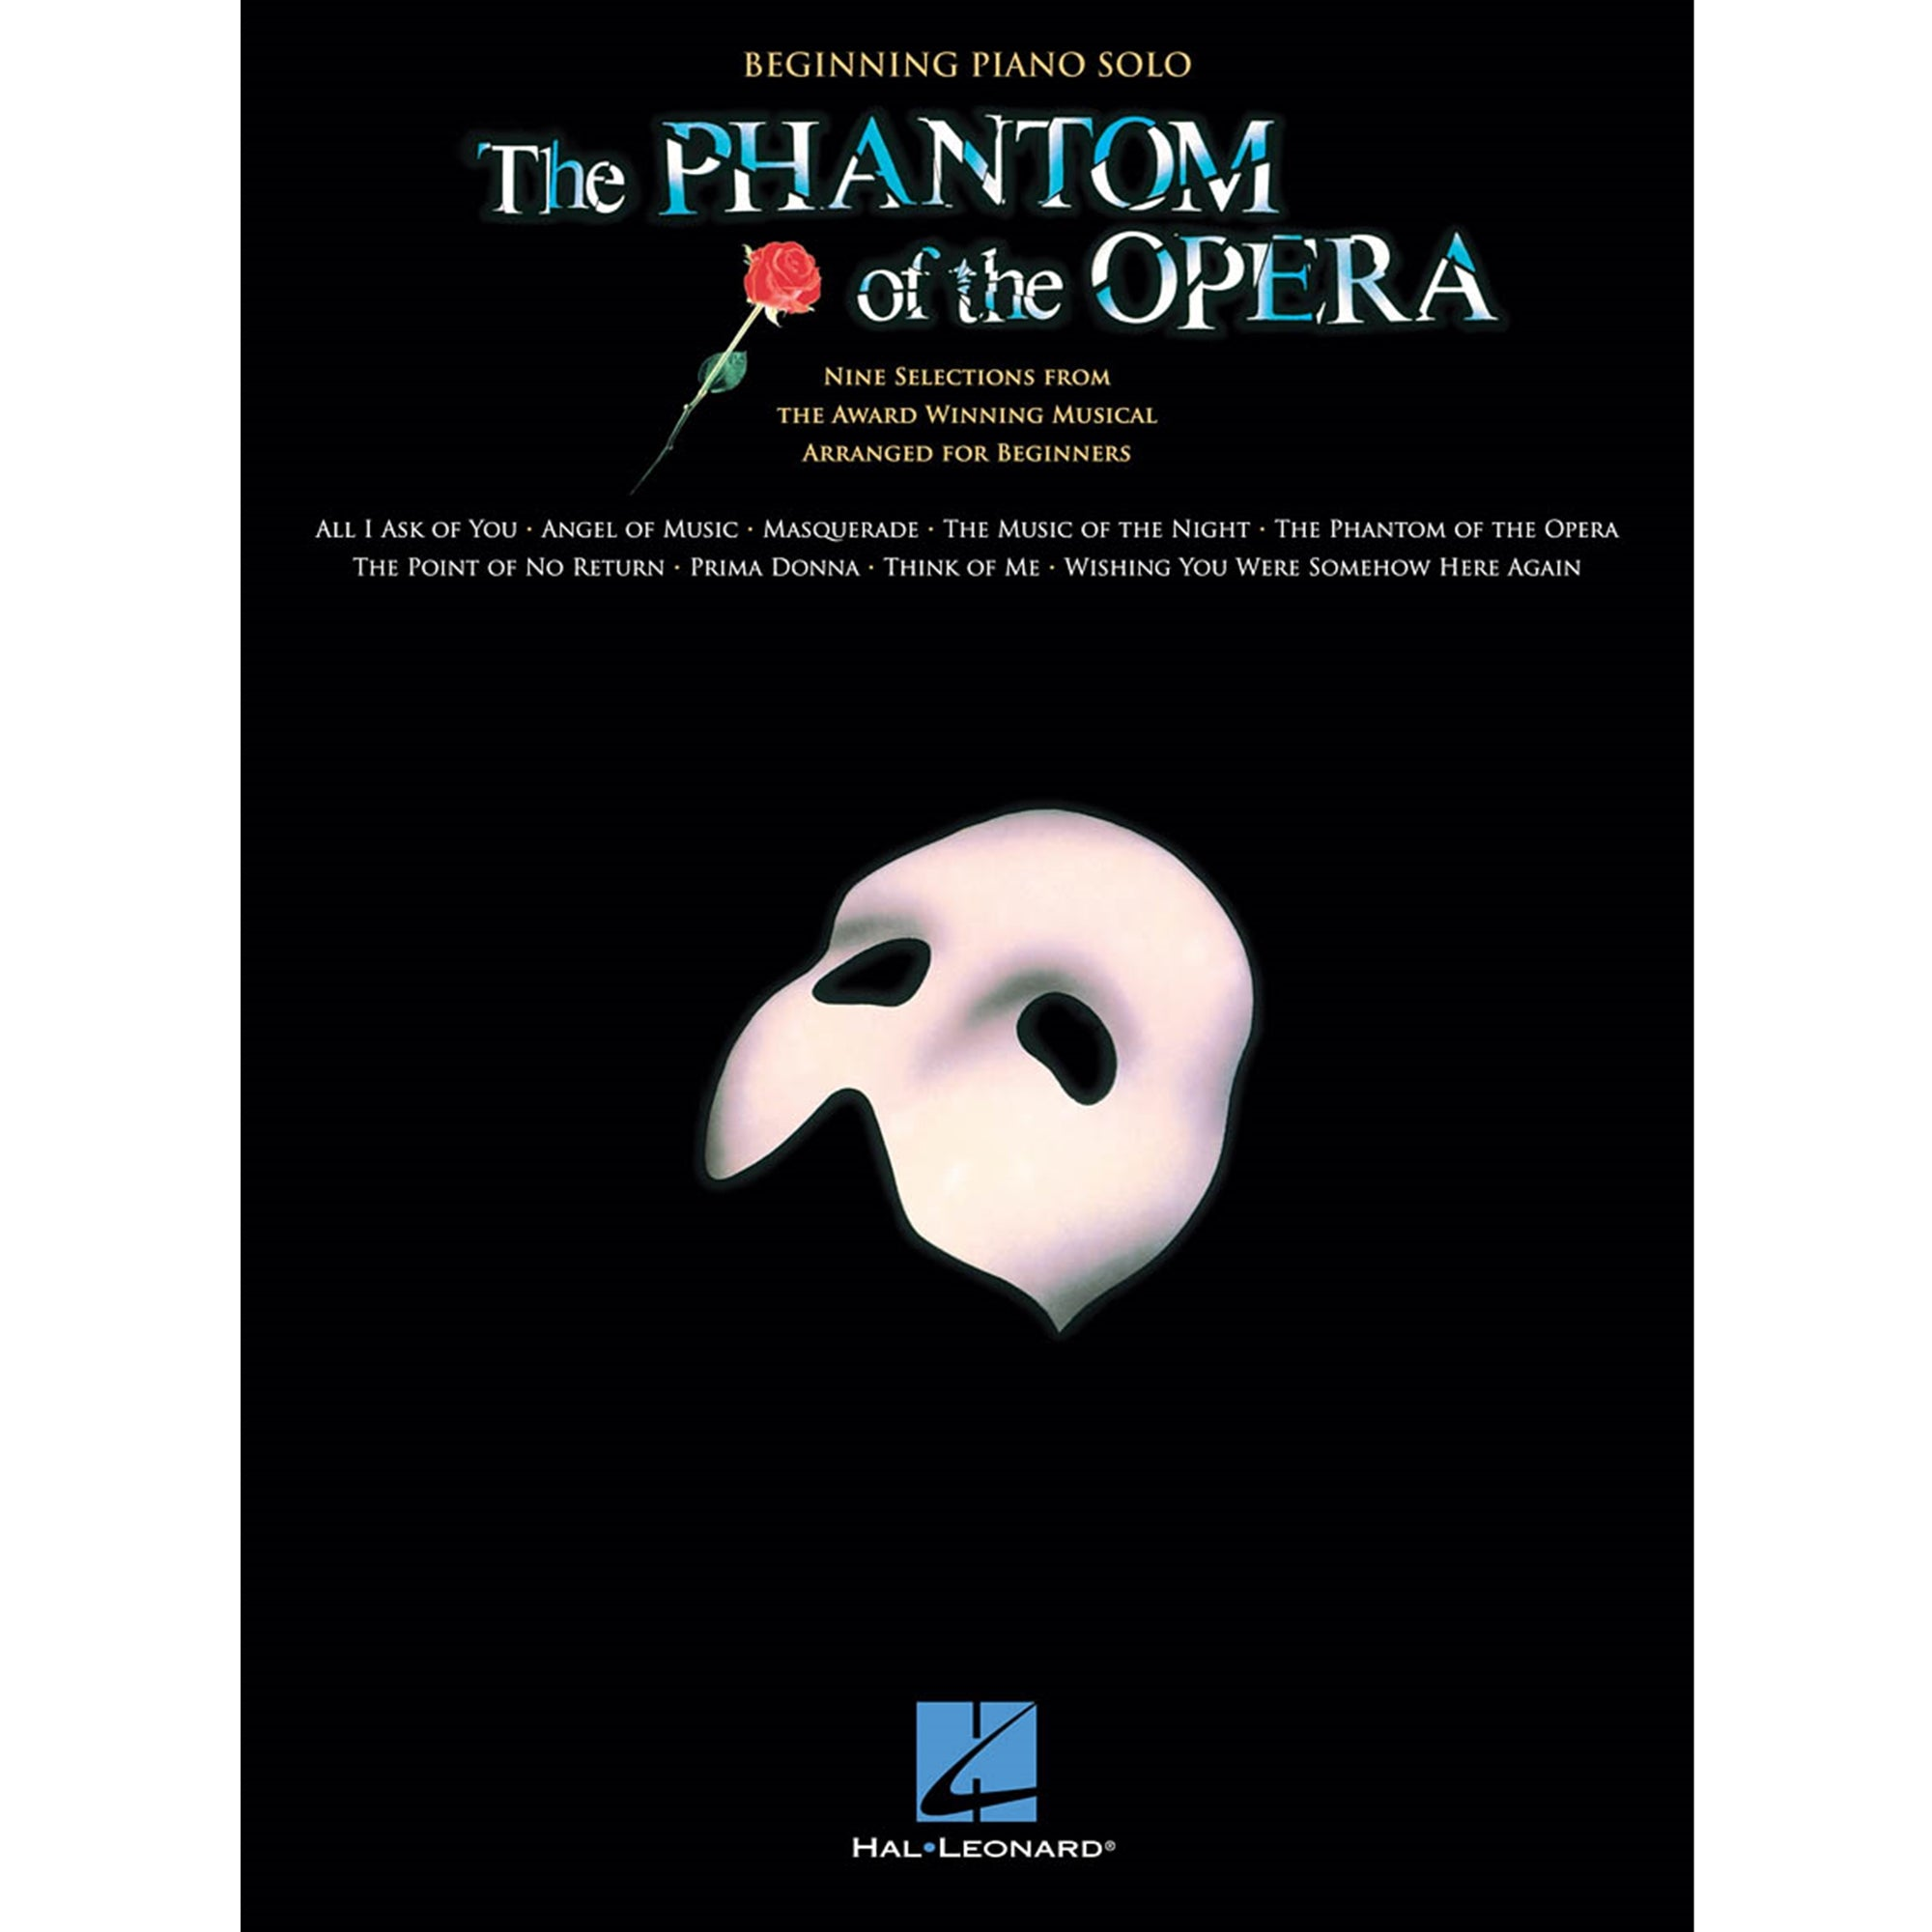 HAL LEONARD 103239 The Phantom of the Opera Beginning Piano Solo